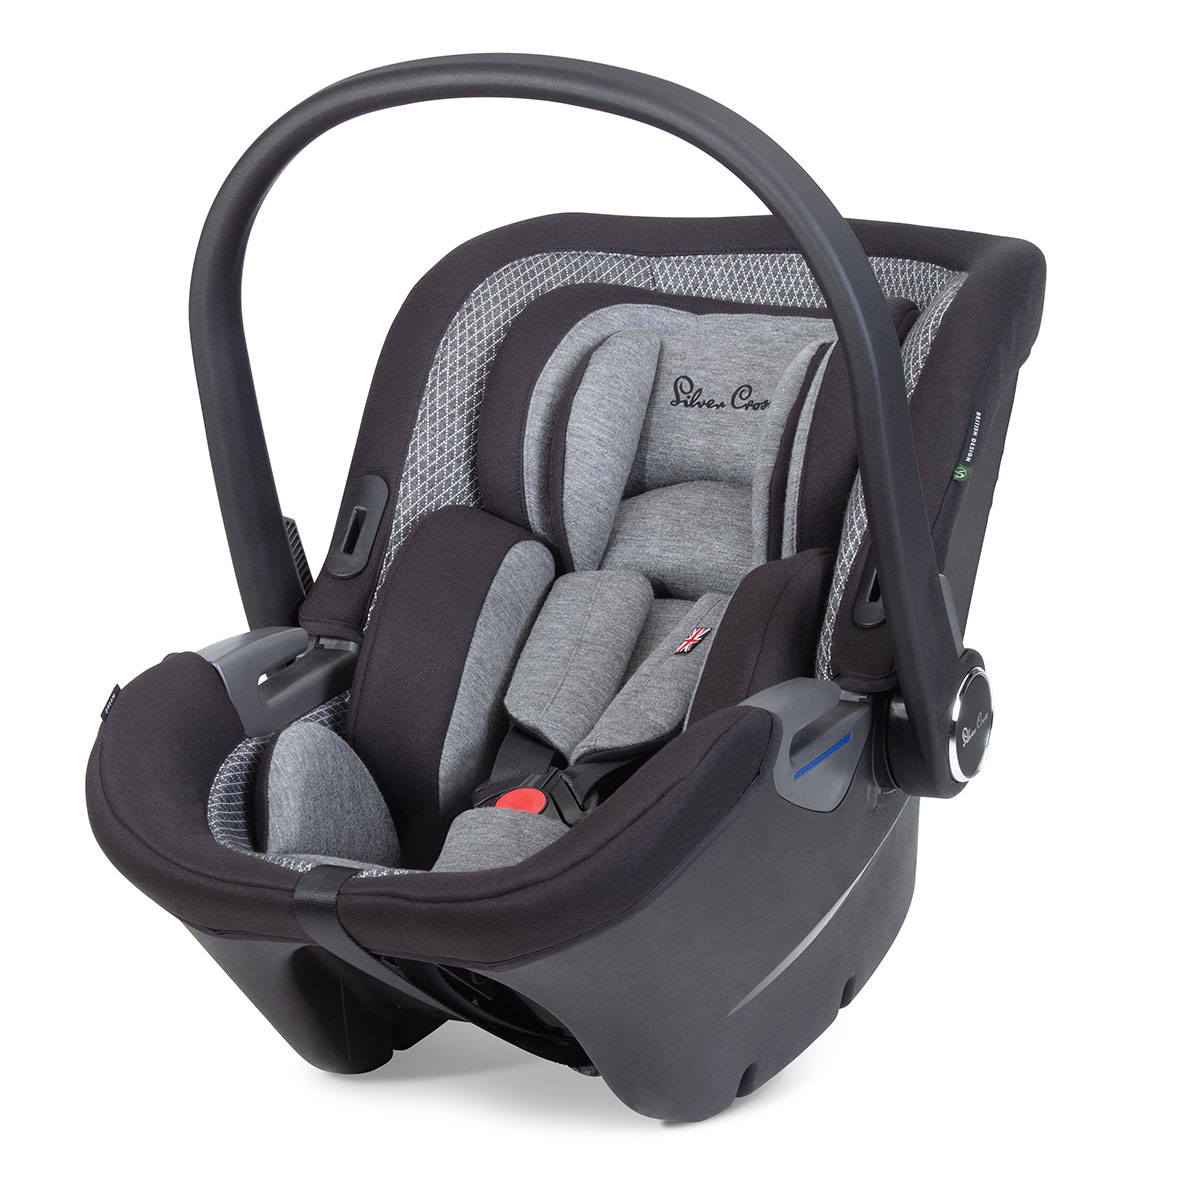 Baby Center Maxi Cosi Pearl Car Seats – Cowans Of Troon Baby Center Troon Ayrshire